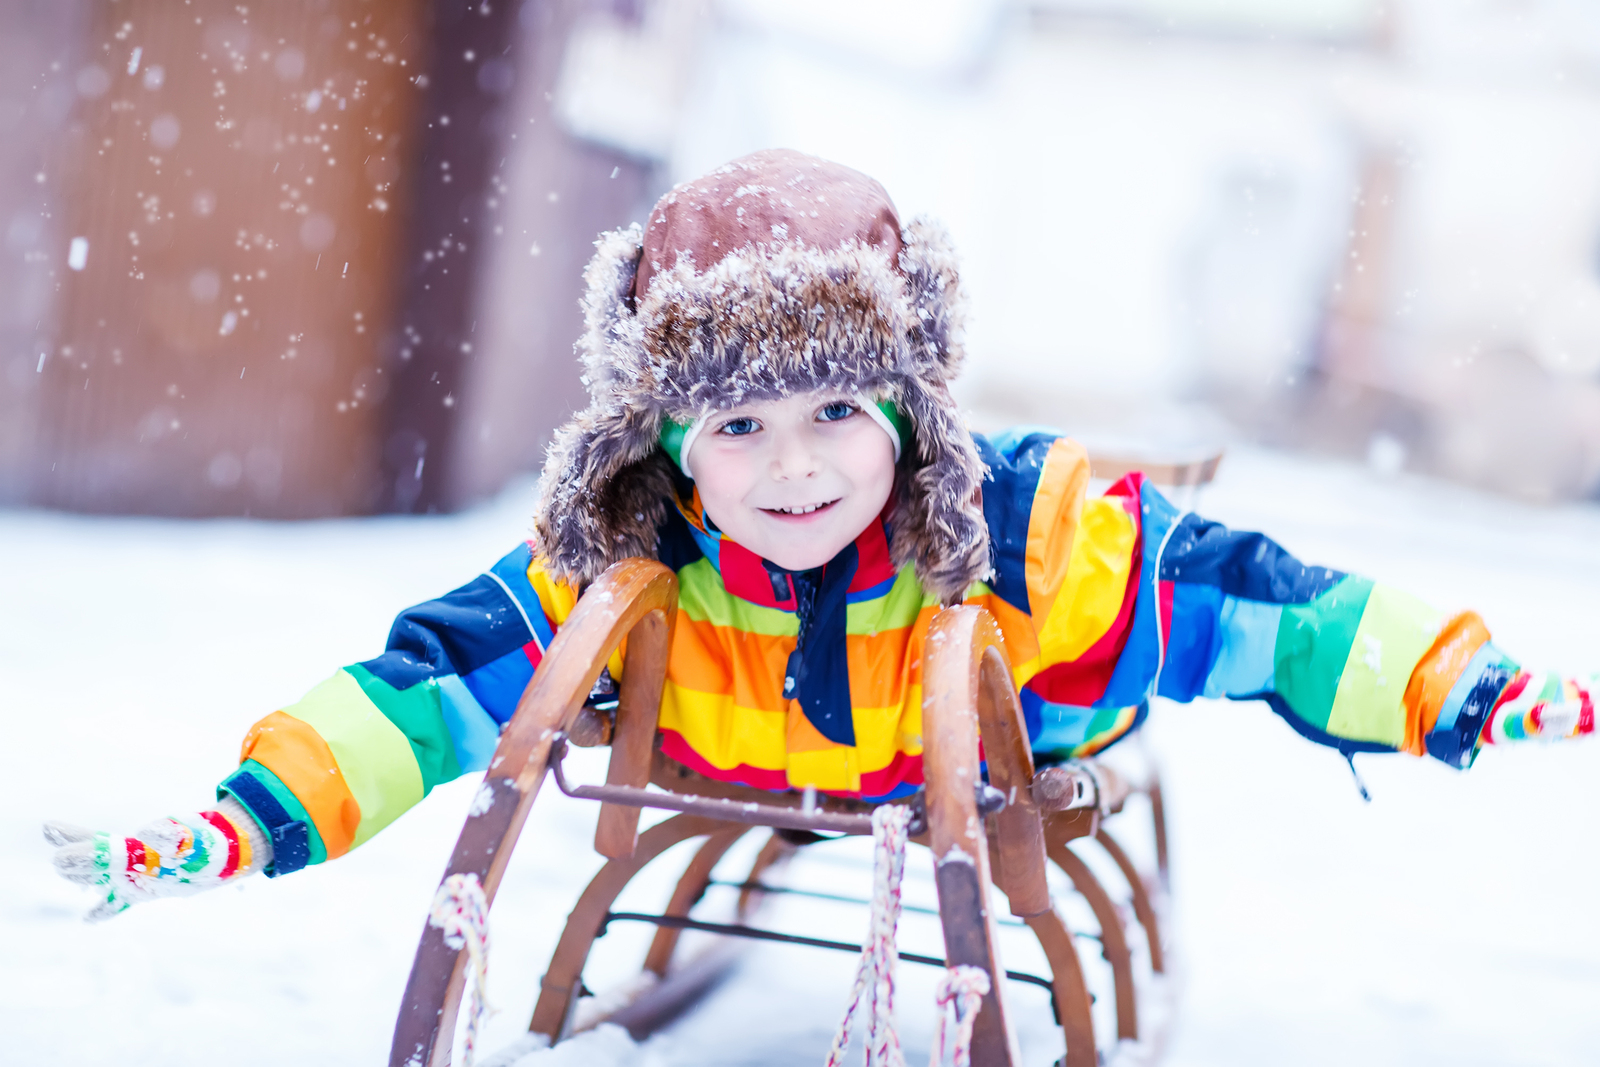 Cute Little Funny Boy In Colorful Winter Clothes Having Fun With ... c2d44b641